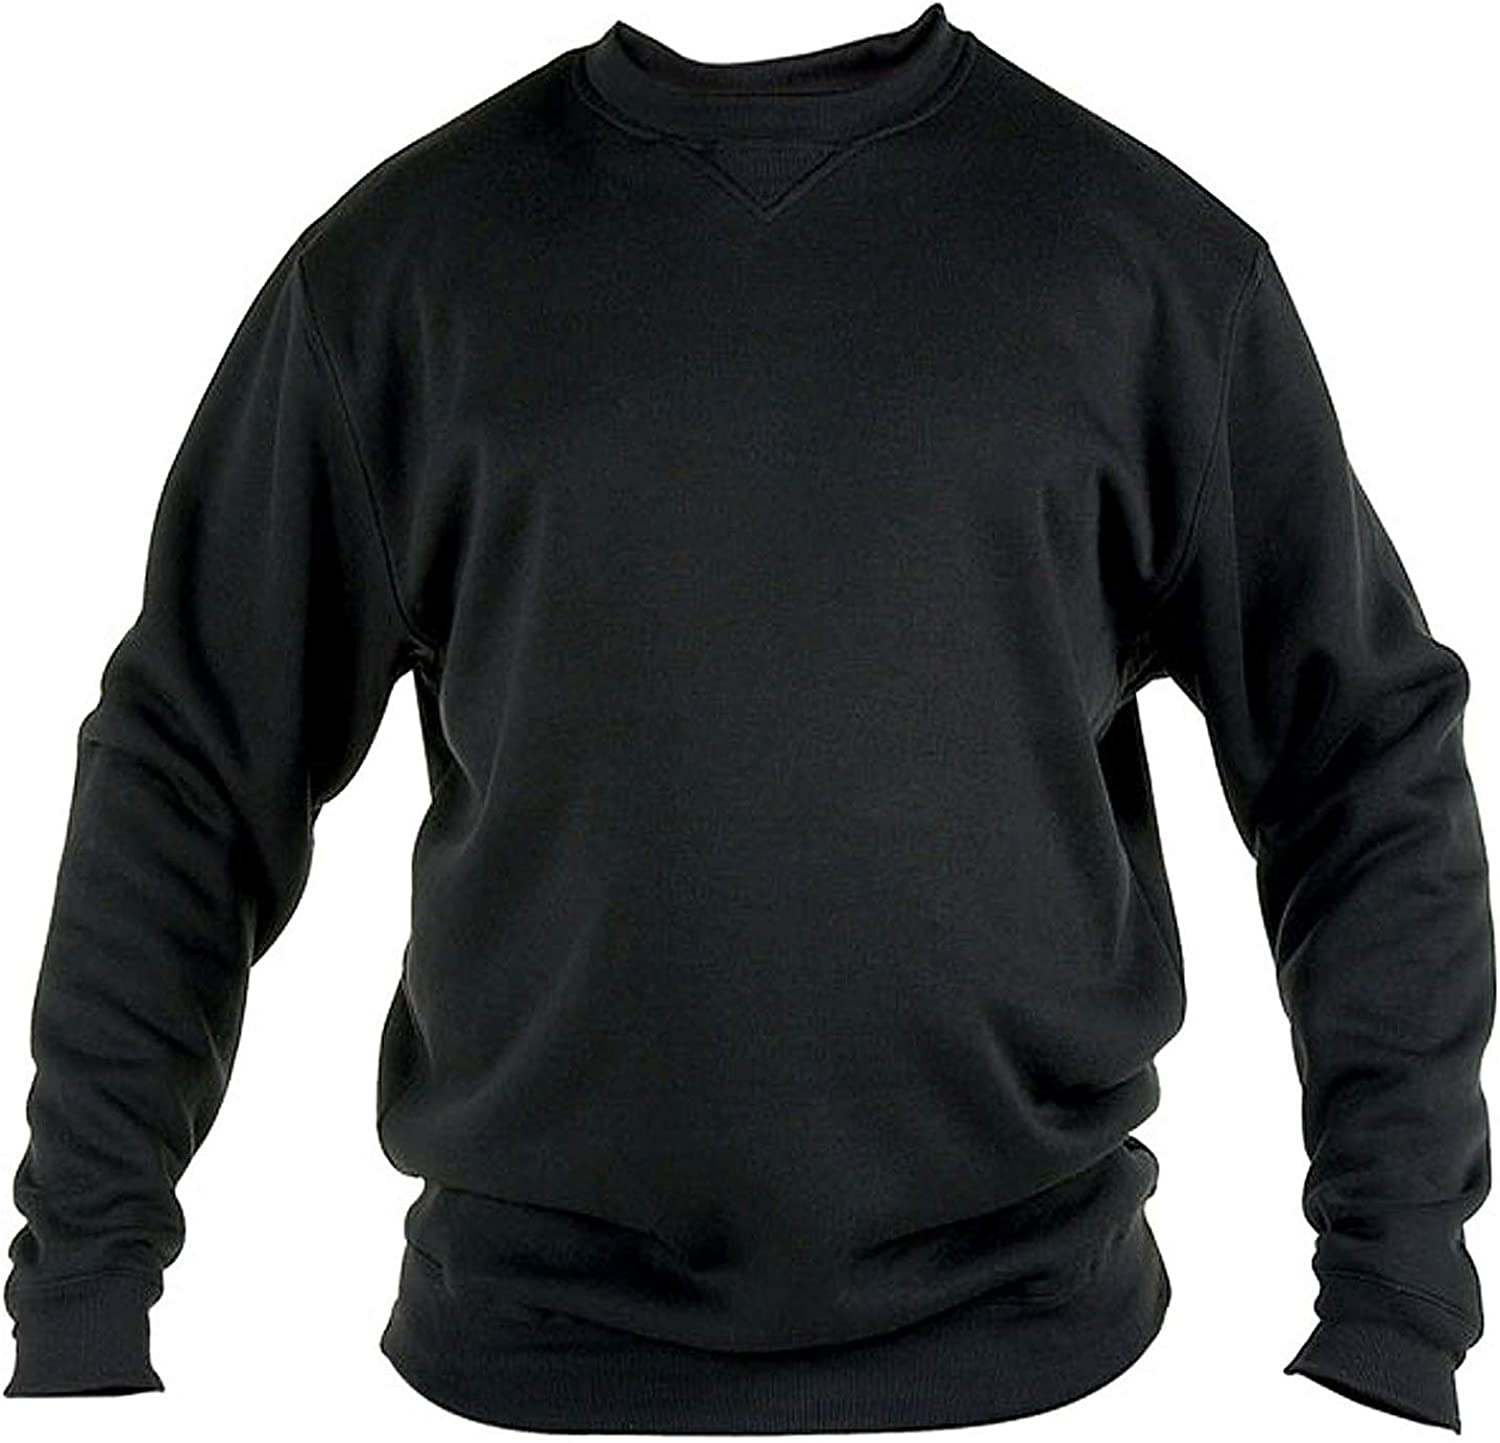 SIZE 1XL TO 8XL ROCKFORD CREW NECK POLY COTTON FLEECE SWEAT SHIRT BLACK 1616 GREY AND NAVY